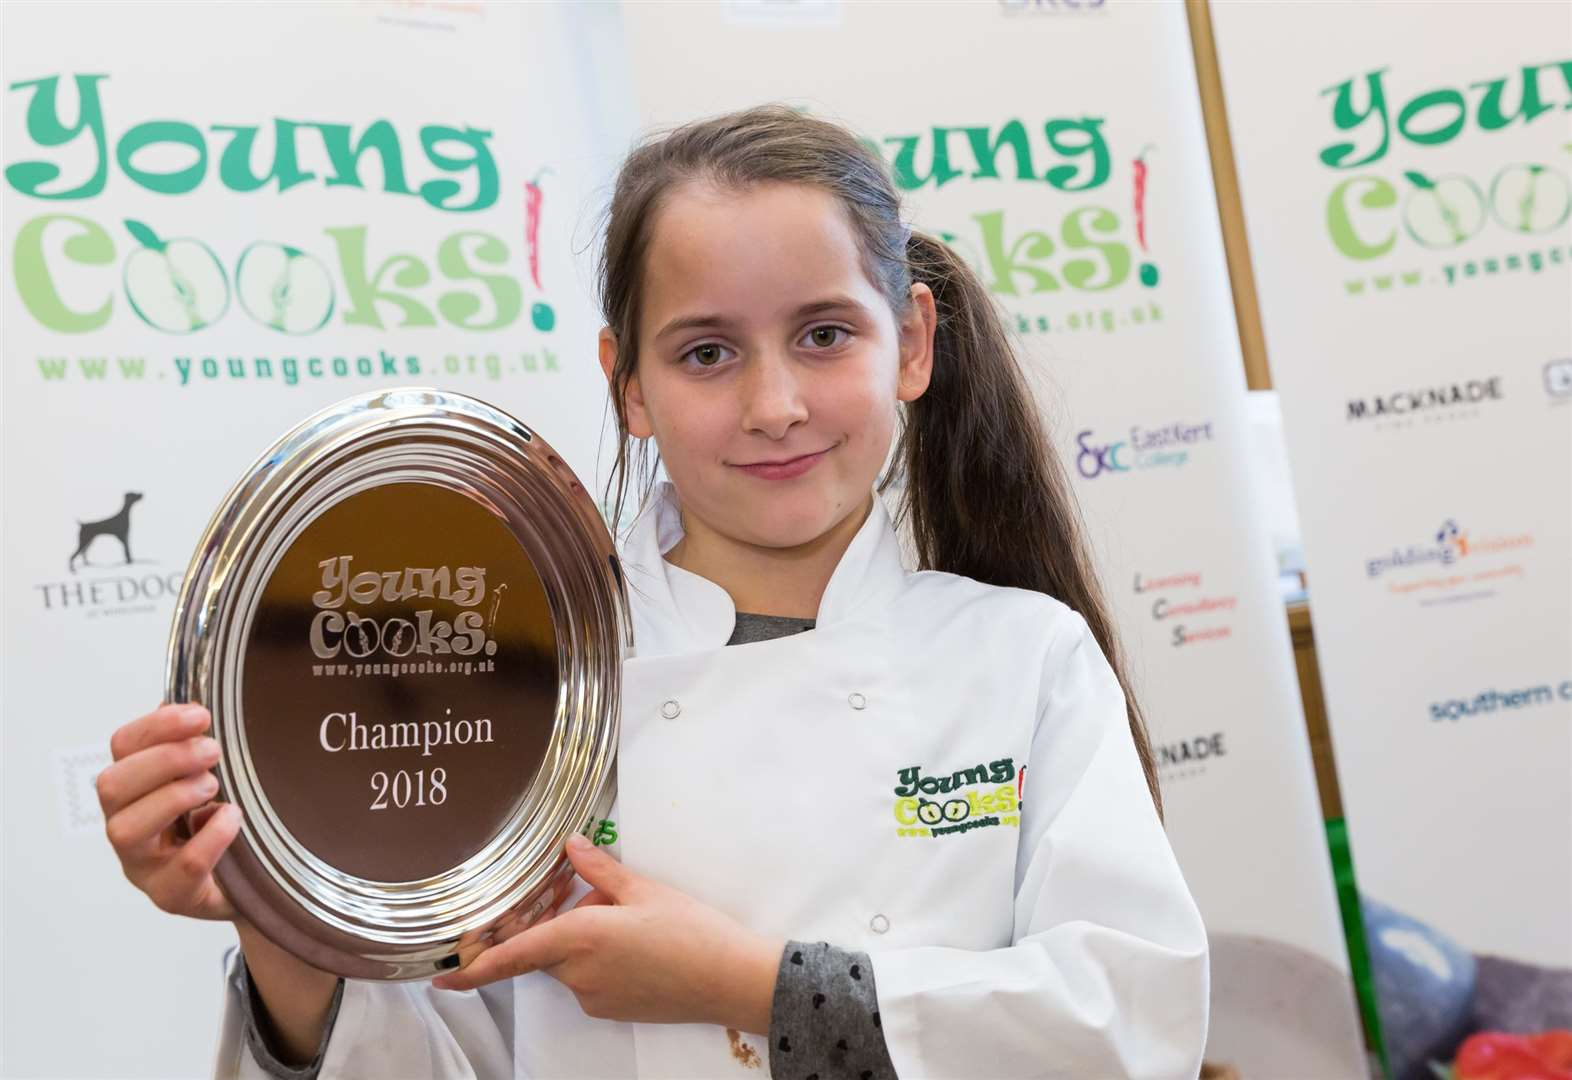 Primary pupils urged to aim for Young Cooks glory